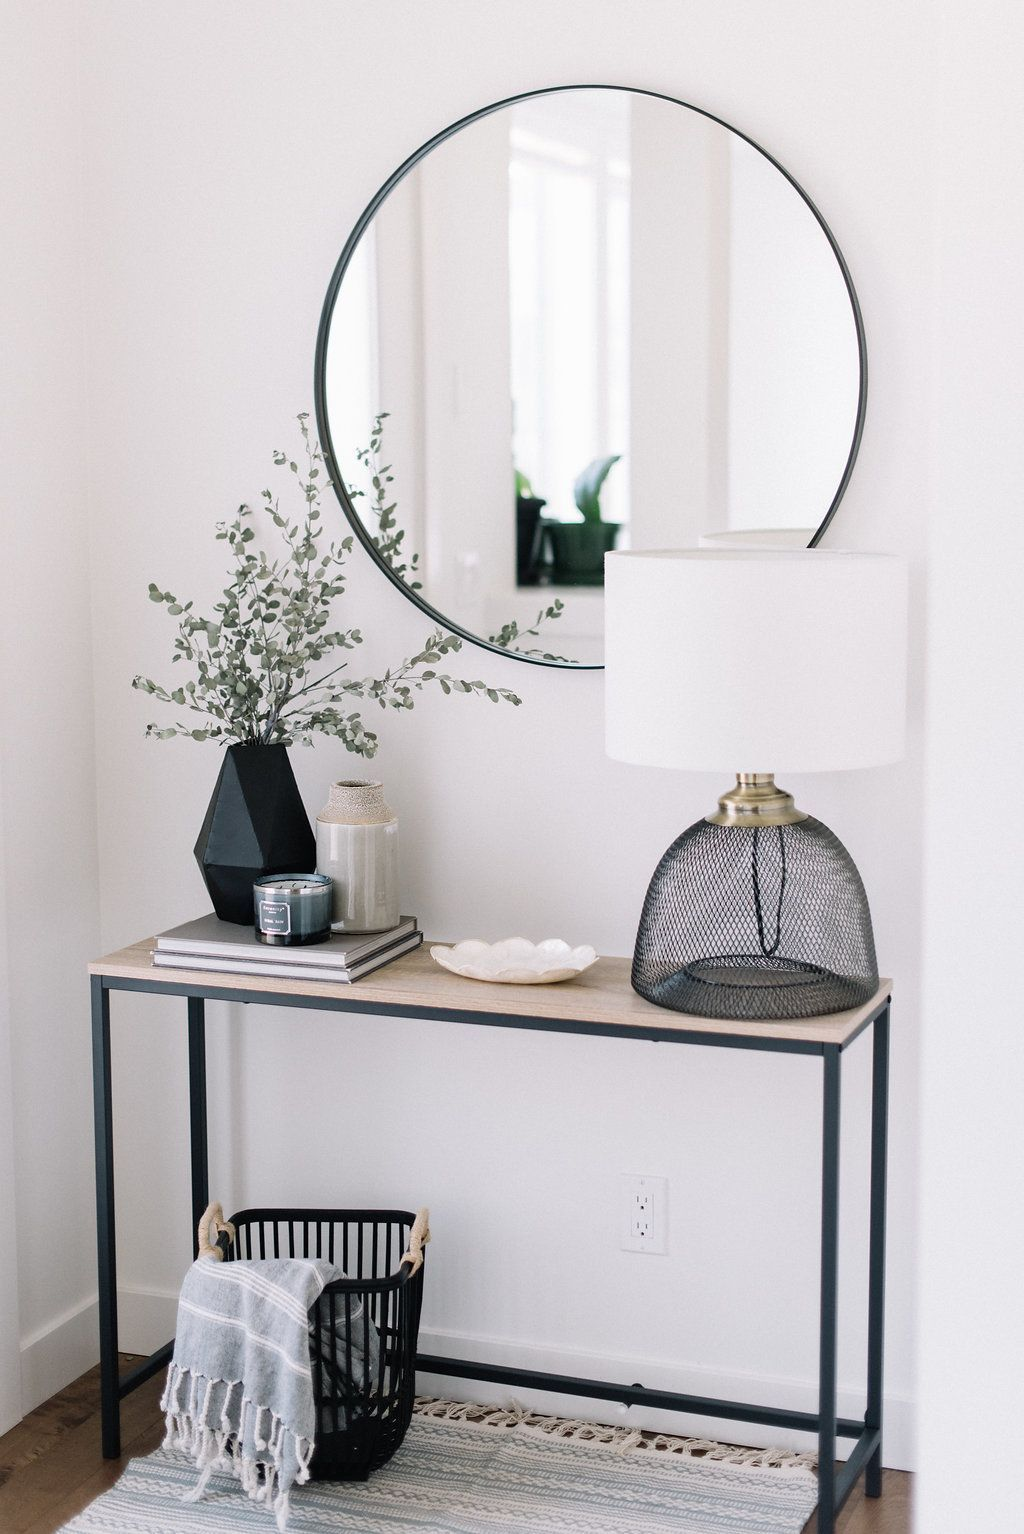 Modern Entryway Table Ideas Round Mirrors Explored On Pinterest See More About Small